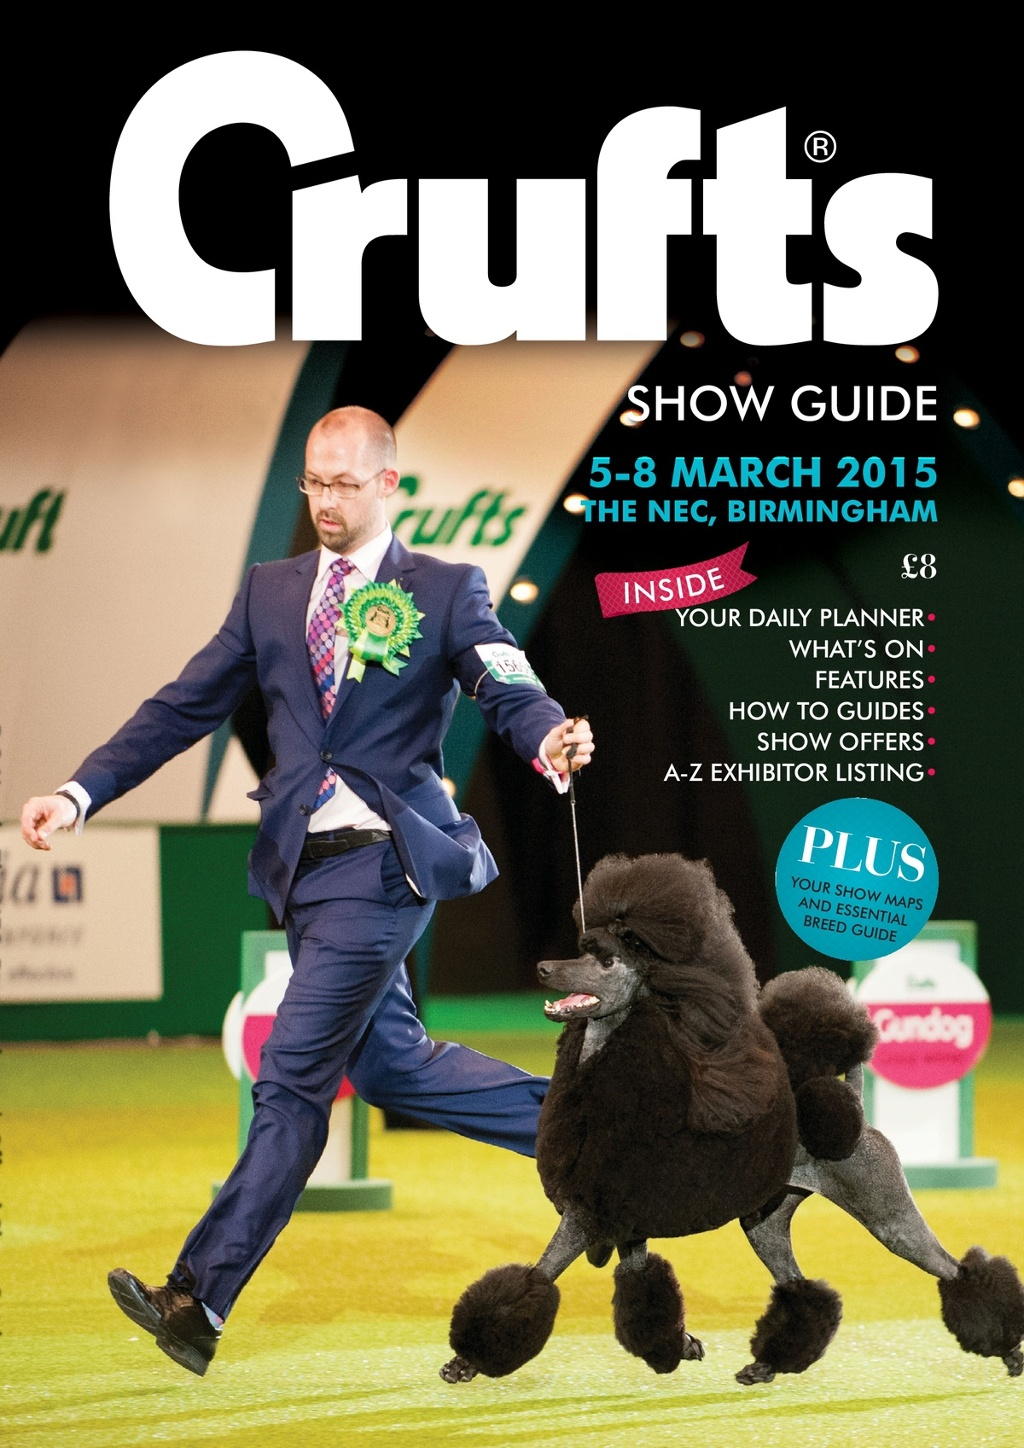 Trade Stands Crufts 2015 : Crufts official show guide